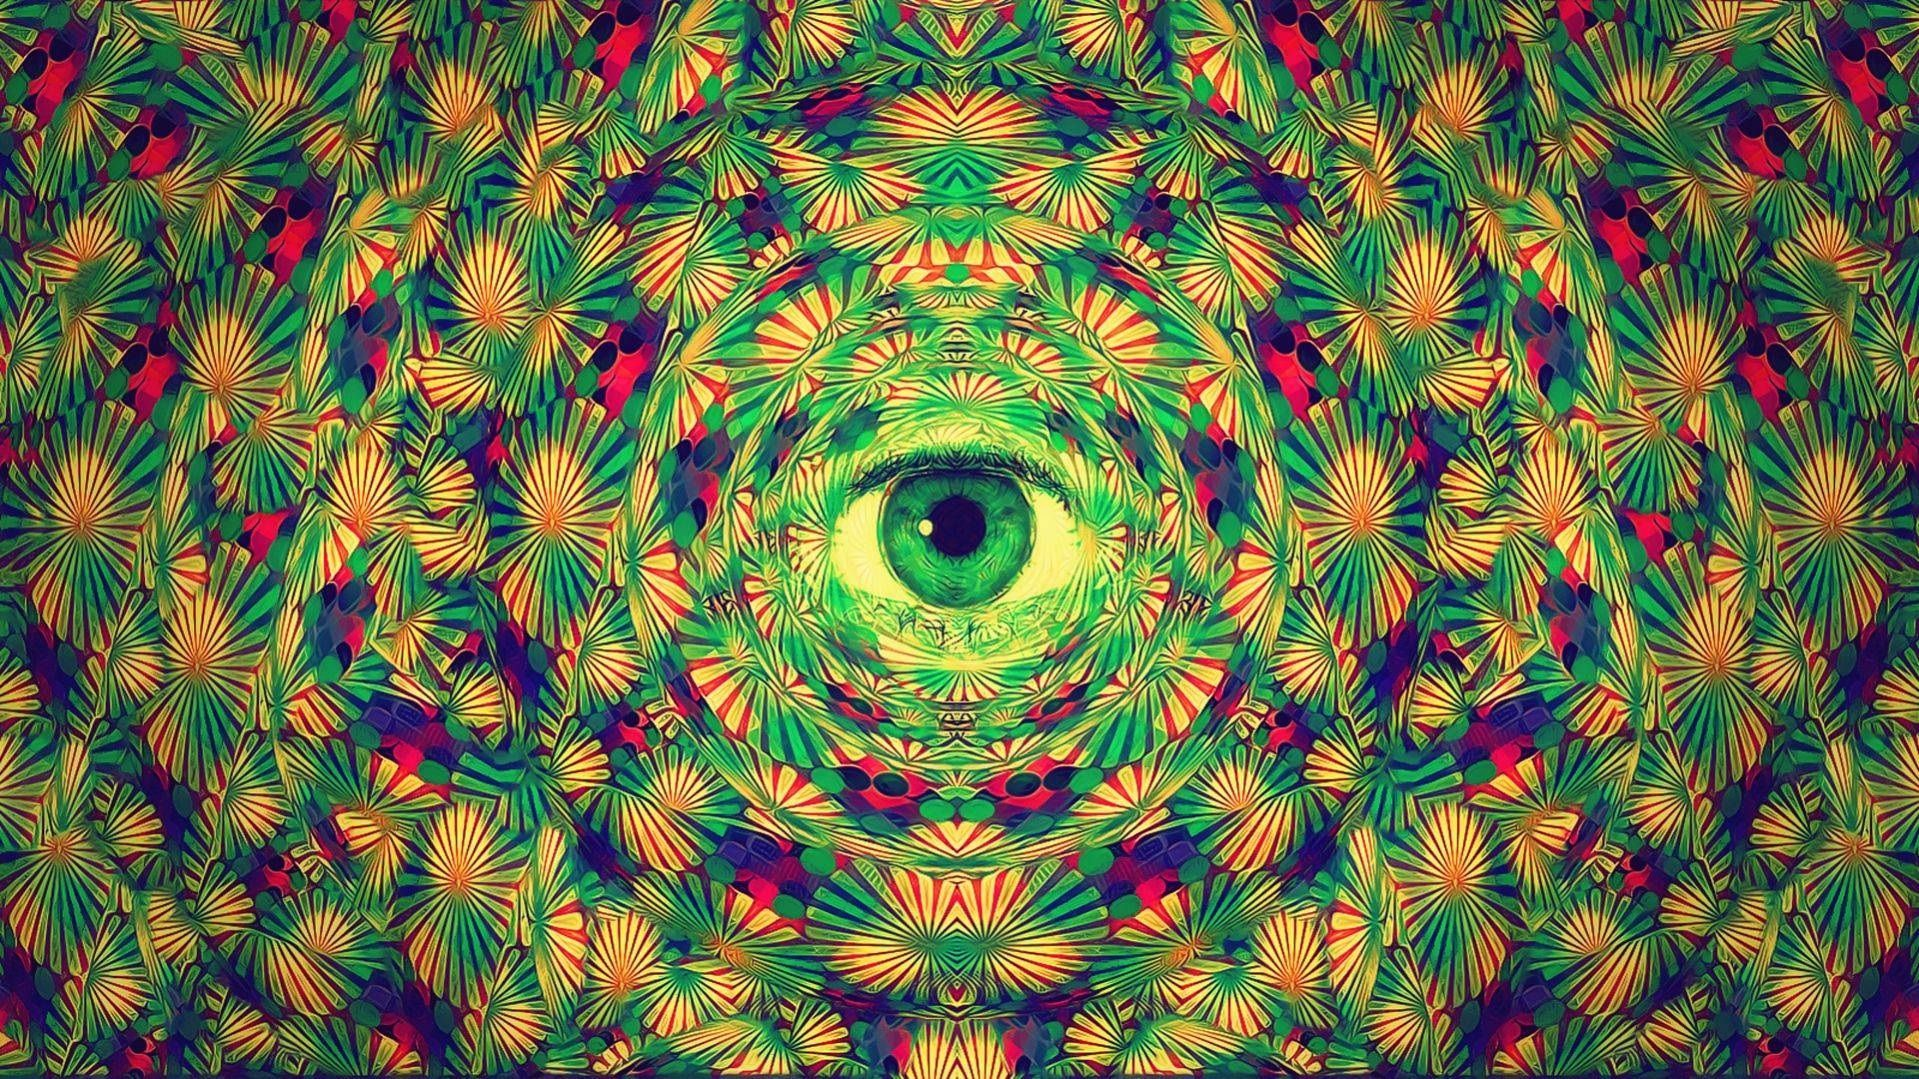 Triipy clipart high resolution Alien Wallpapers Alien High Trippy